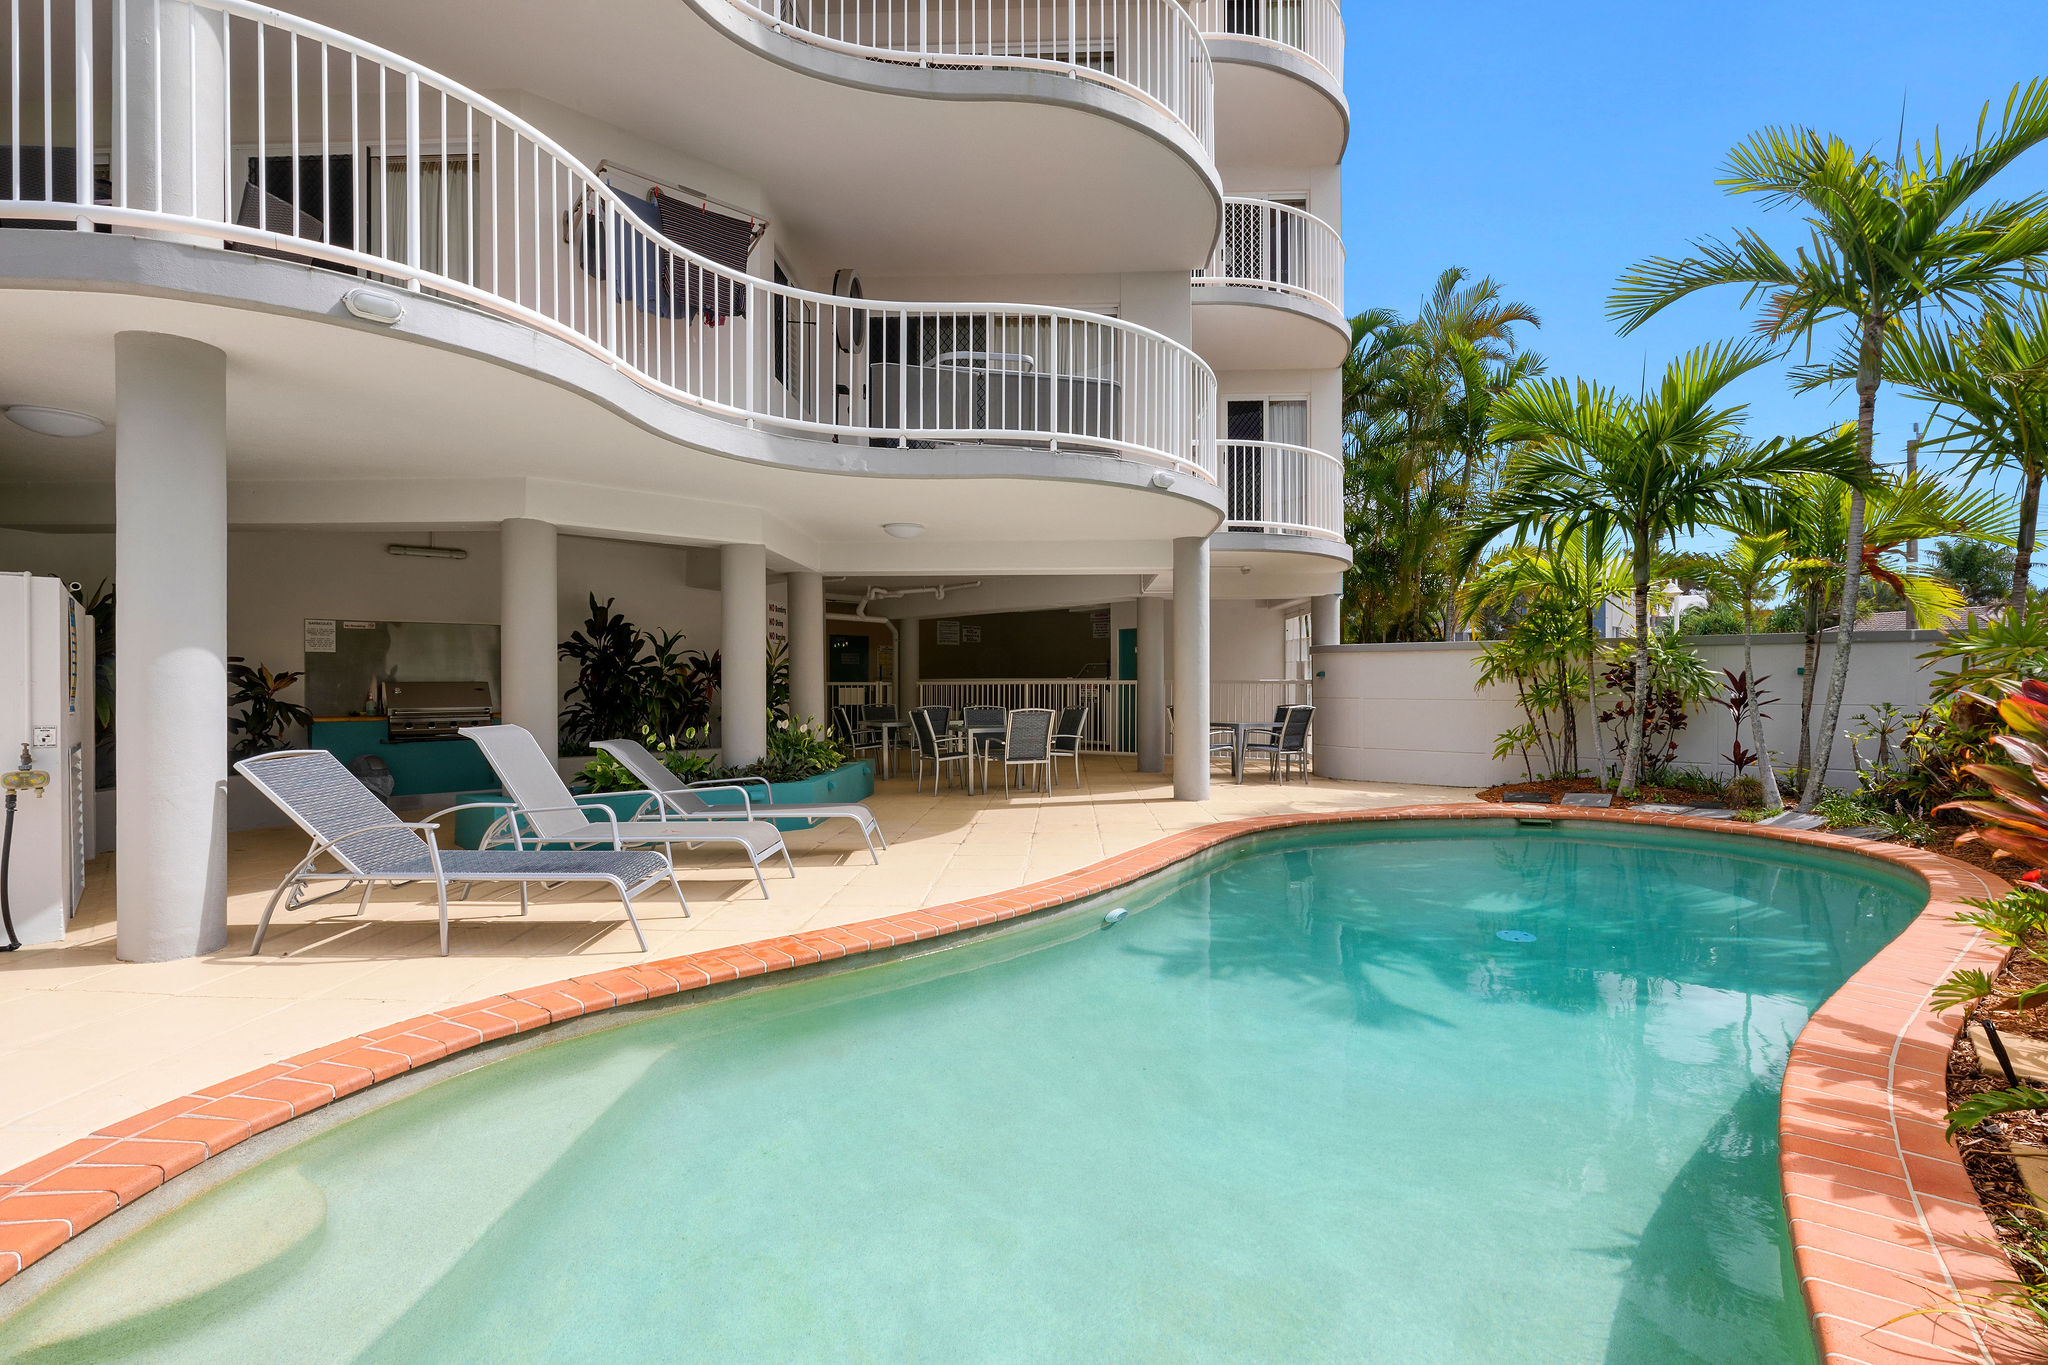 Apartment 3BR Coolum Beach  photo 24019104